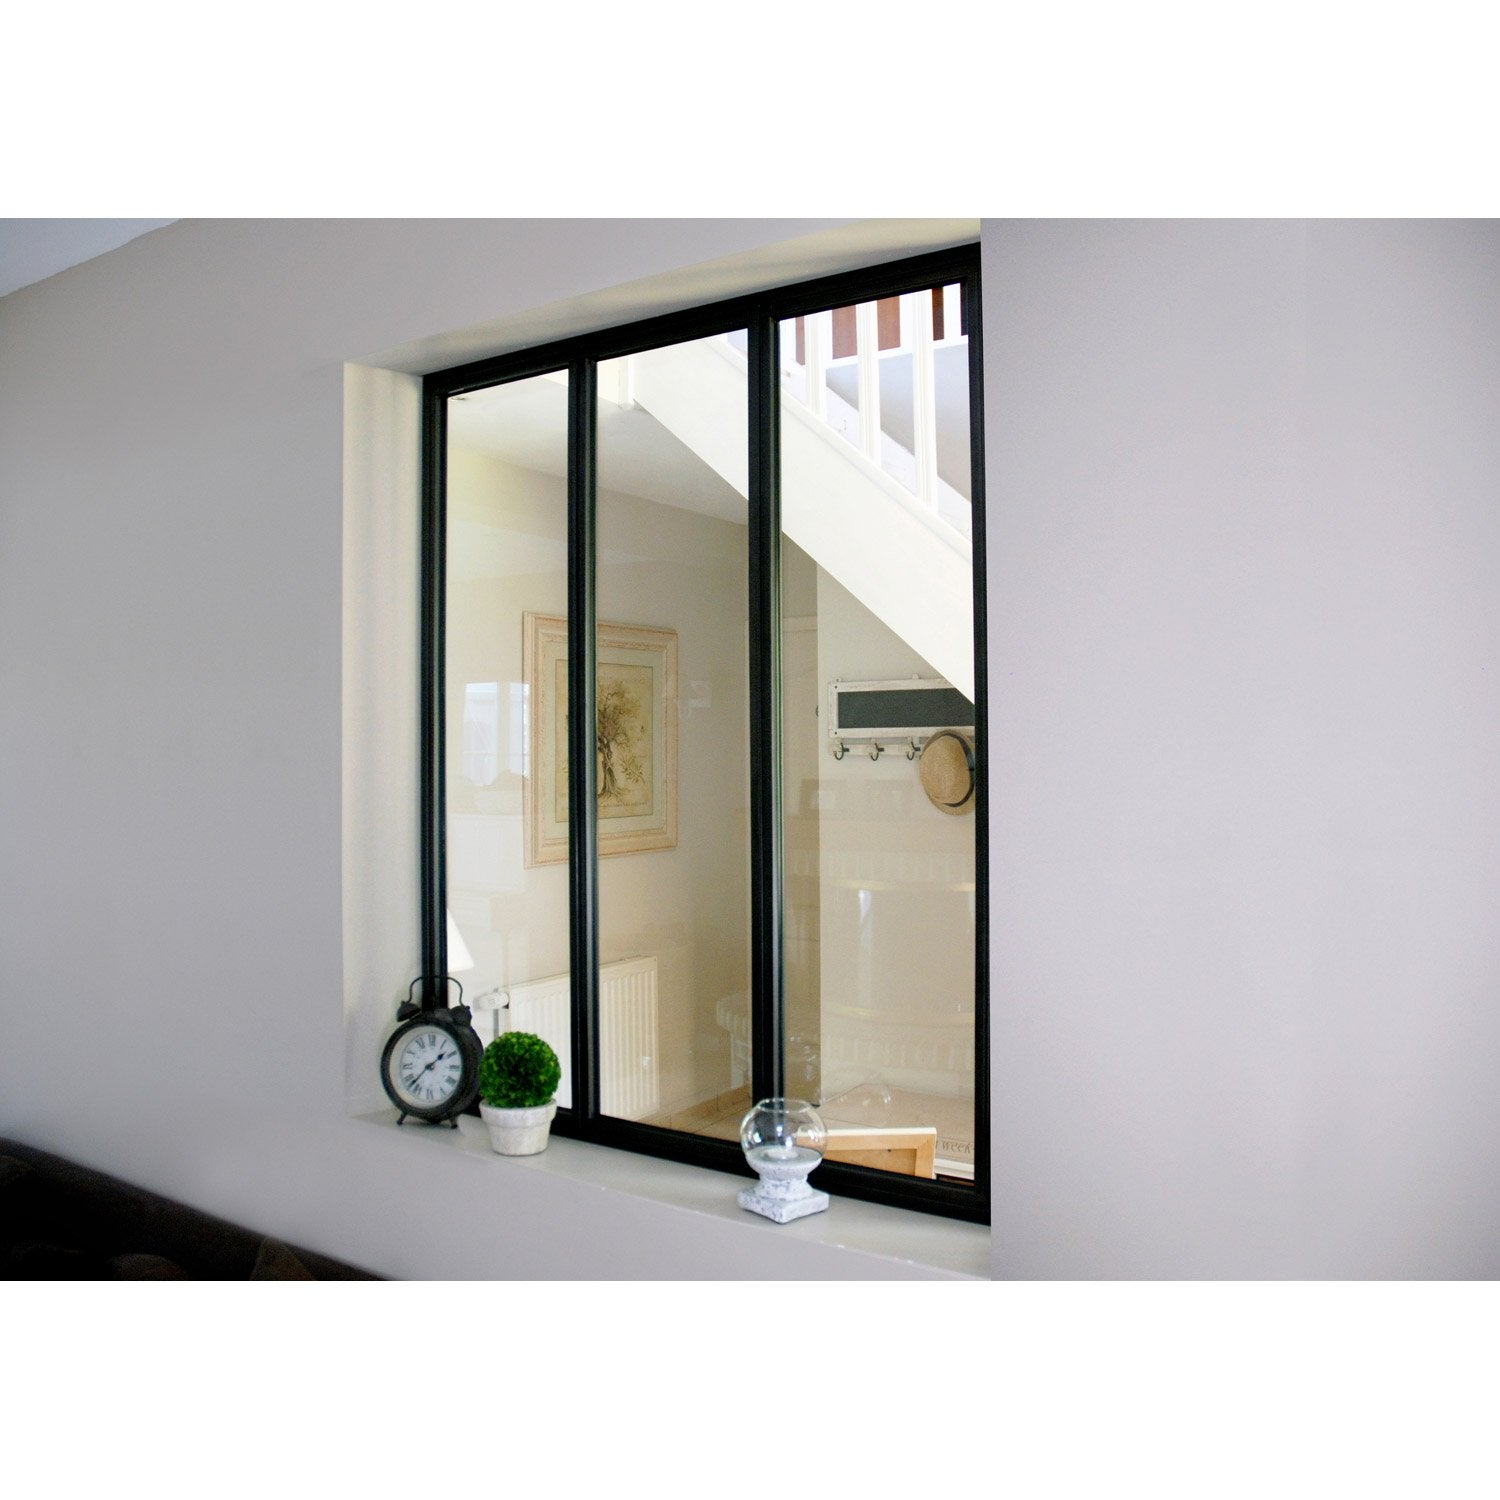 Verri re d 39 int rieur atelier en kit aluminium noir 3 for Verriere interieur bois